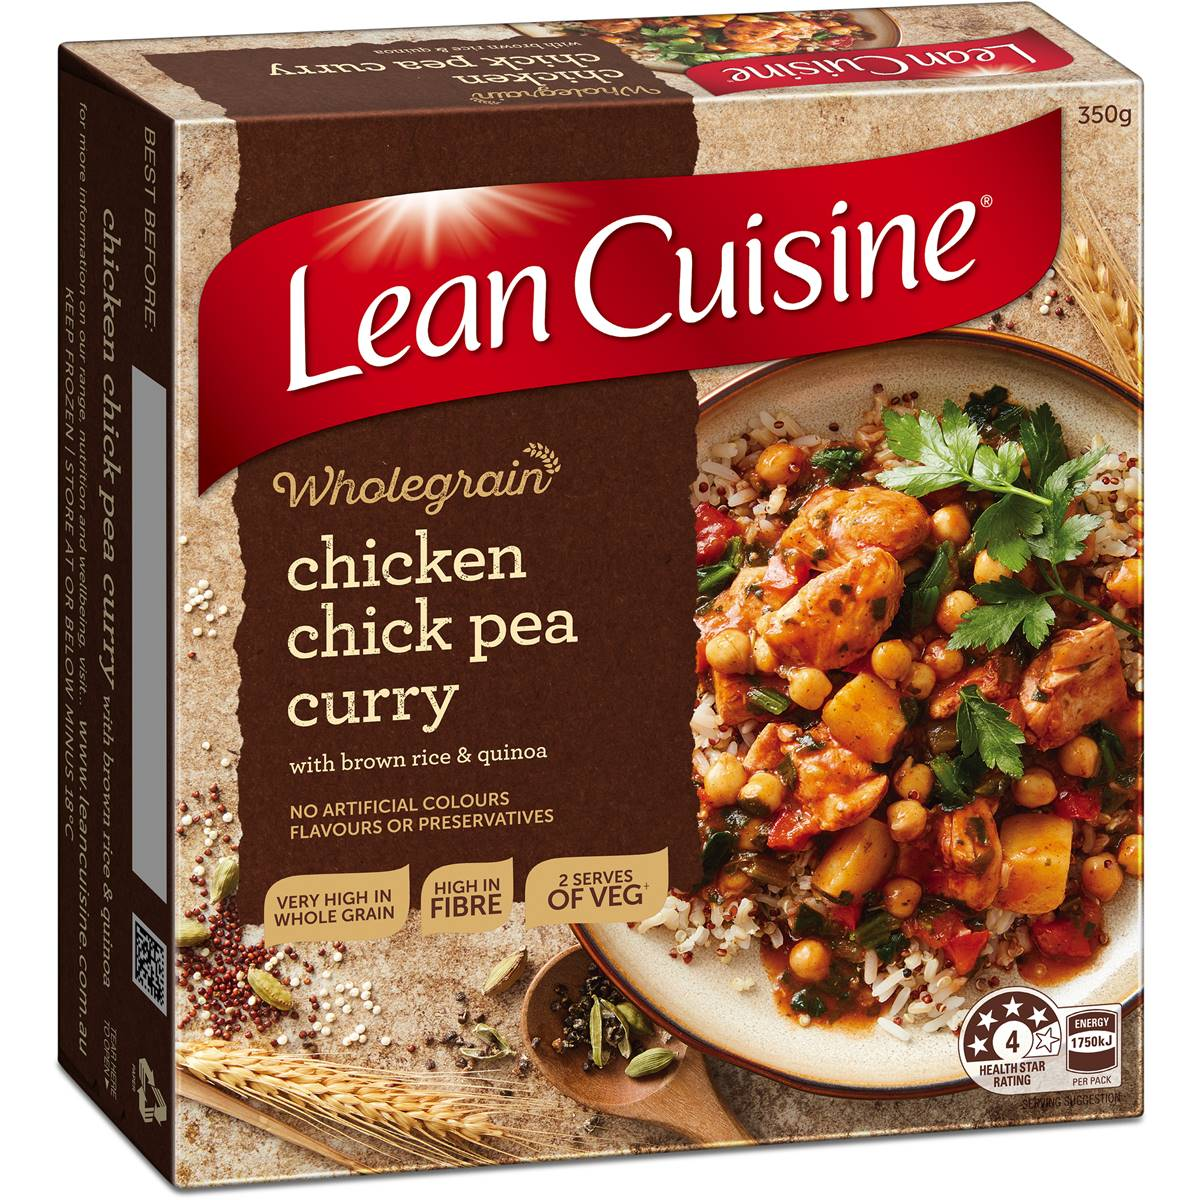 Woolworths lean cuisine steam chicken curry compare club for Average price of lean cuisine